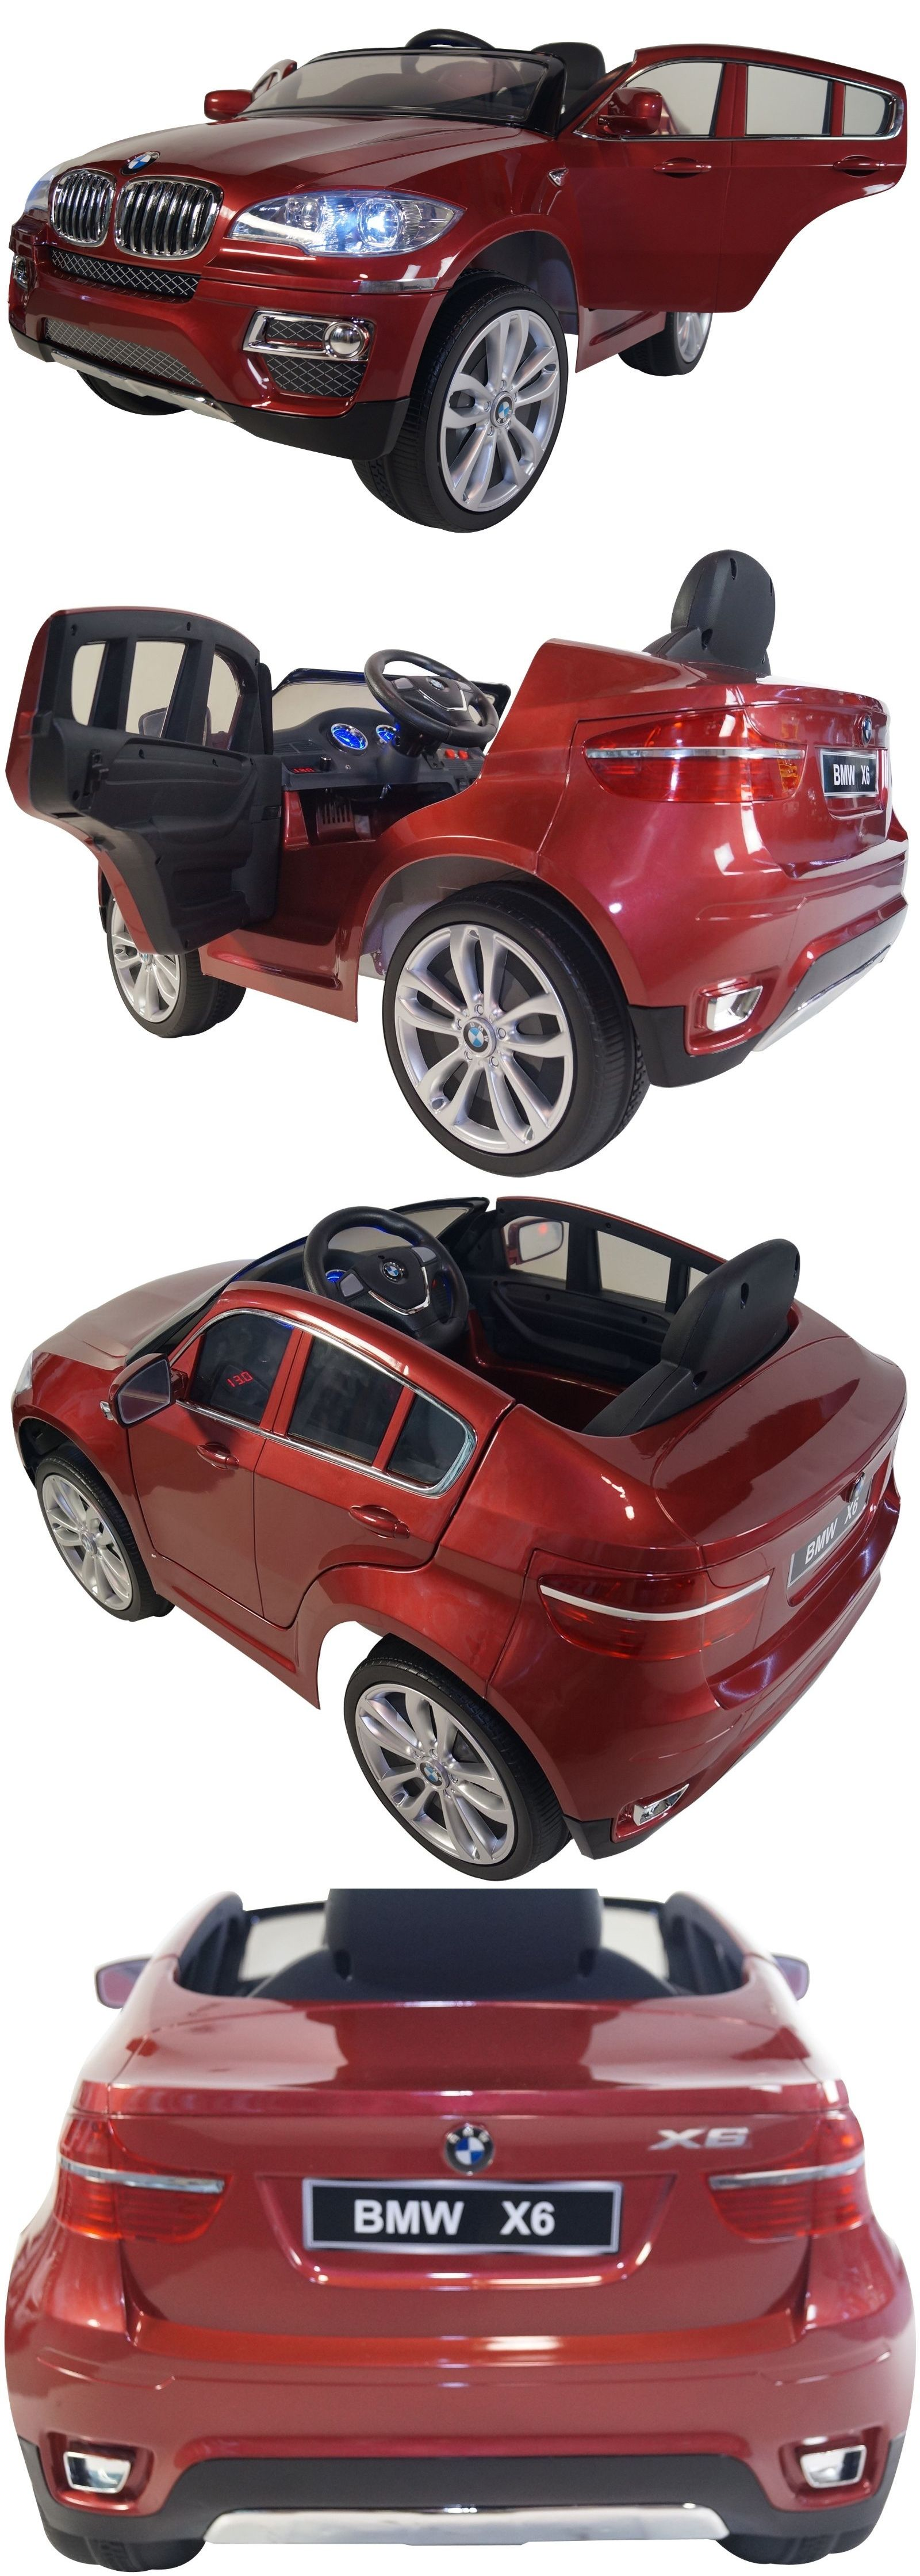 Toy Vehicles 145946: Bmw X6 Style 12V Battery Powered Electric Ride On Kids Toy Car Remote Rc Red -> BUY IT NOW ONLY: $389 on eBay!